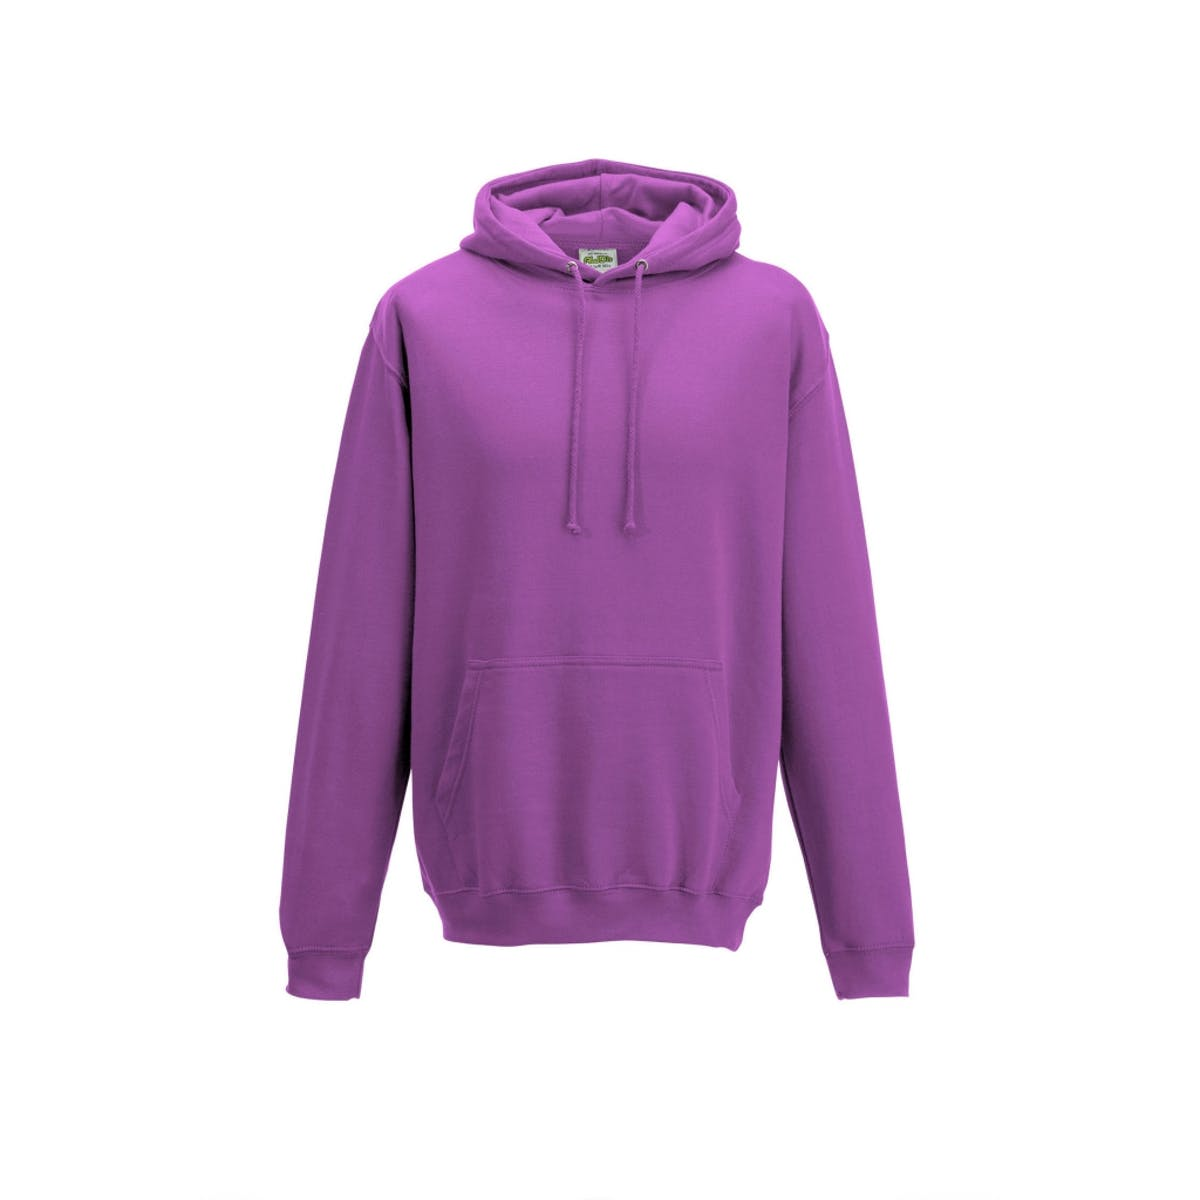 pinky purple college hoodies